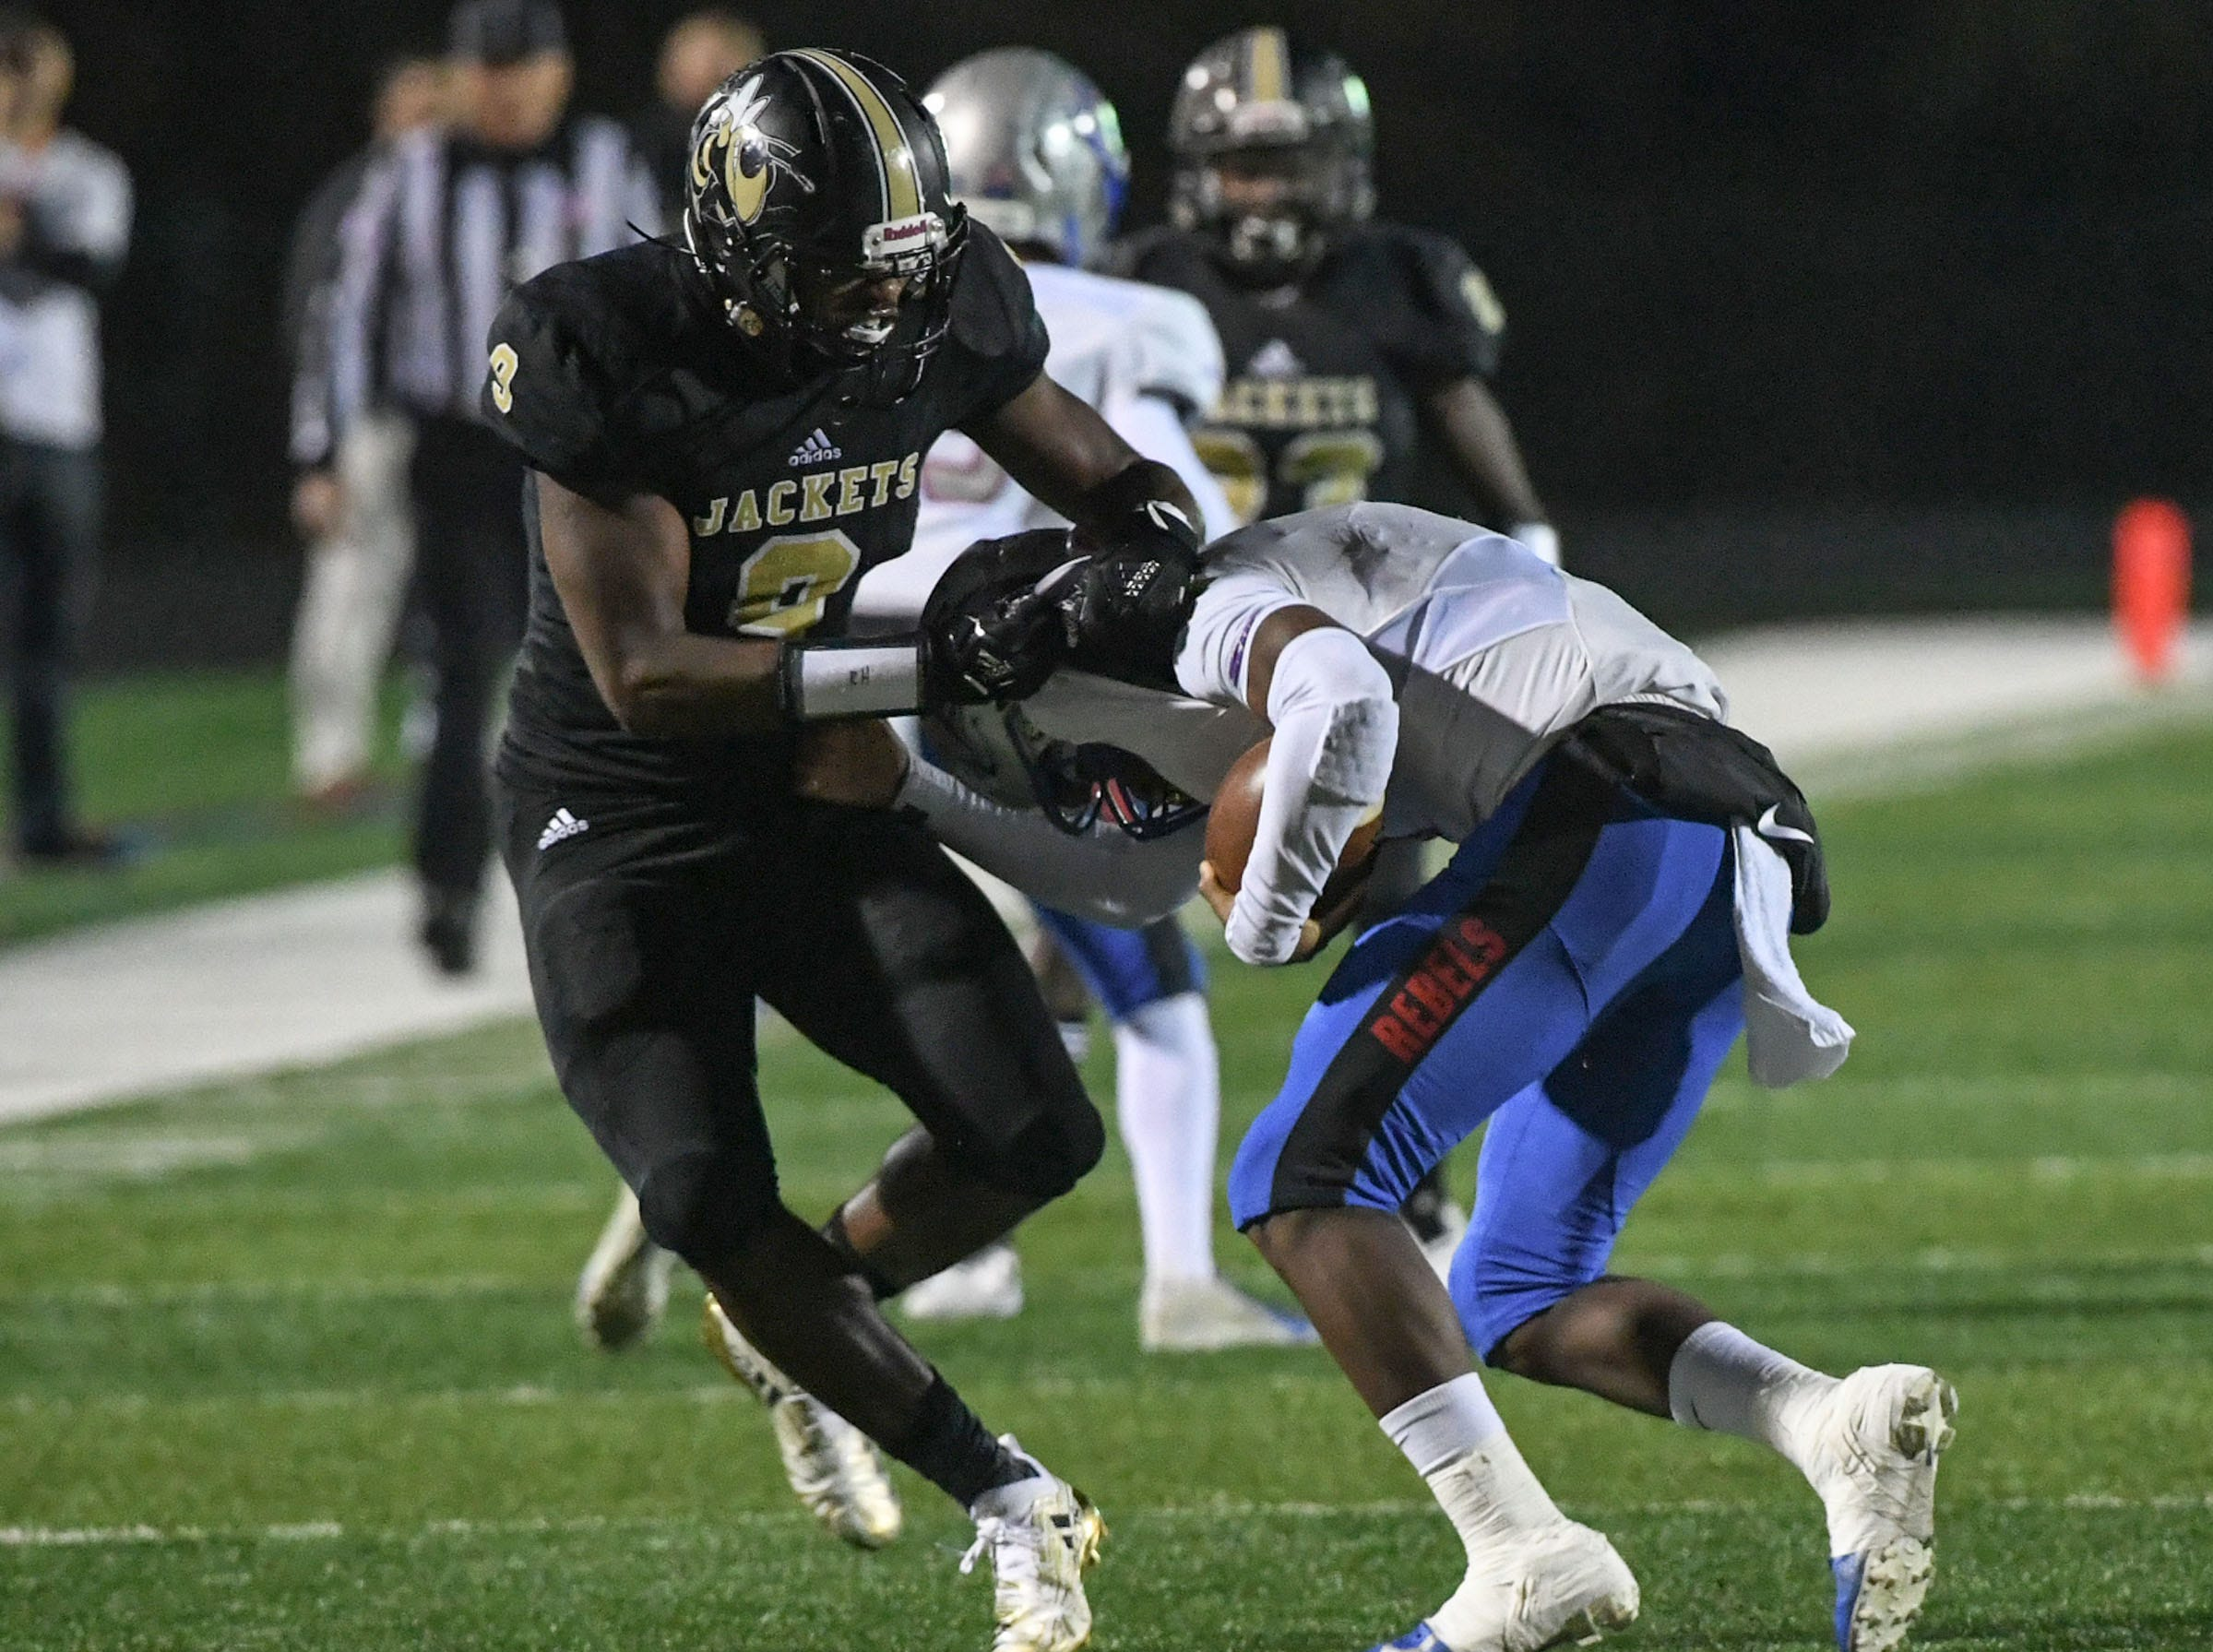 TL Hanna senior Jay Lagroon (9) tackle Byrnes senior BJ Peake (1) during the first quarter of the Class AAAAA state playoffs at TL Hanna High School in Anderson on Friday, November 30, 2018.